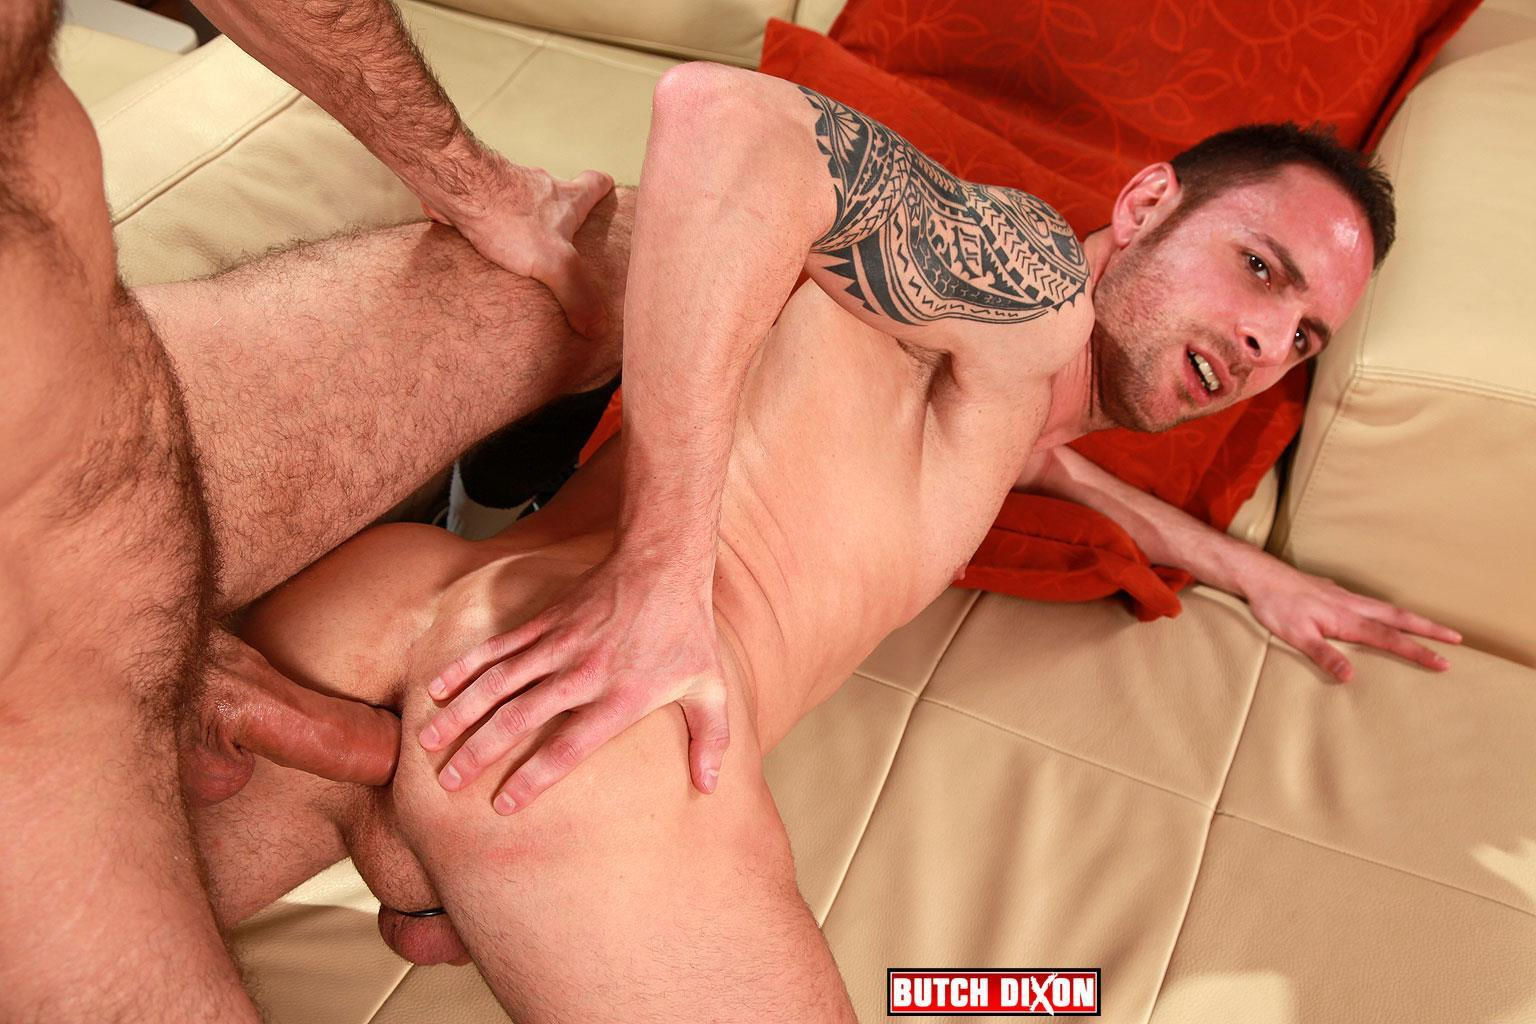 Butch-Dixon-Aitor-Bravo-and-Craig-Daniel-Big-Uncut-Cock-Barebacking-Breeding-BBBH-Amateur-Gay-Porn-10 Craig Daniel Barebacking Aitor Bravo With His Huge Uncut Cock